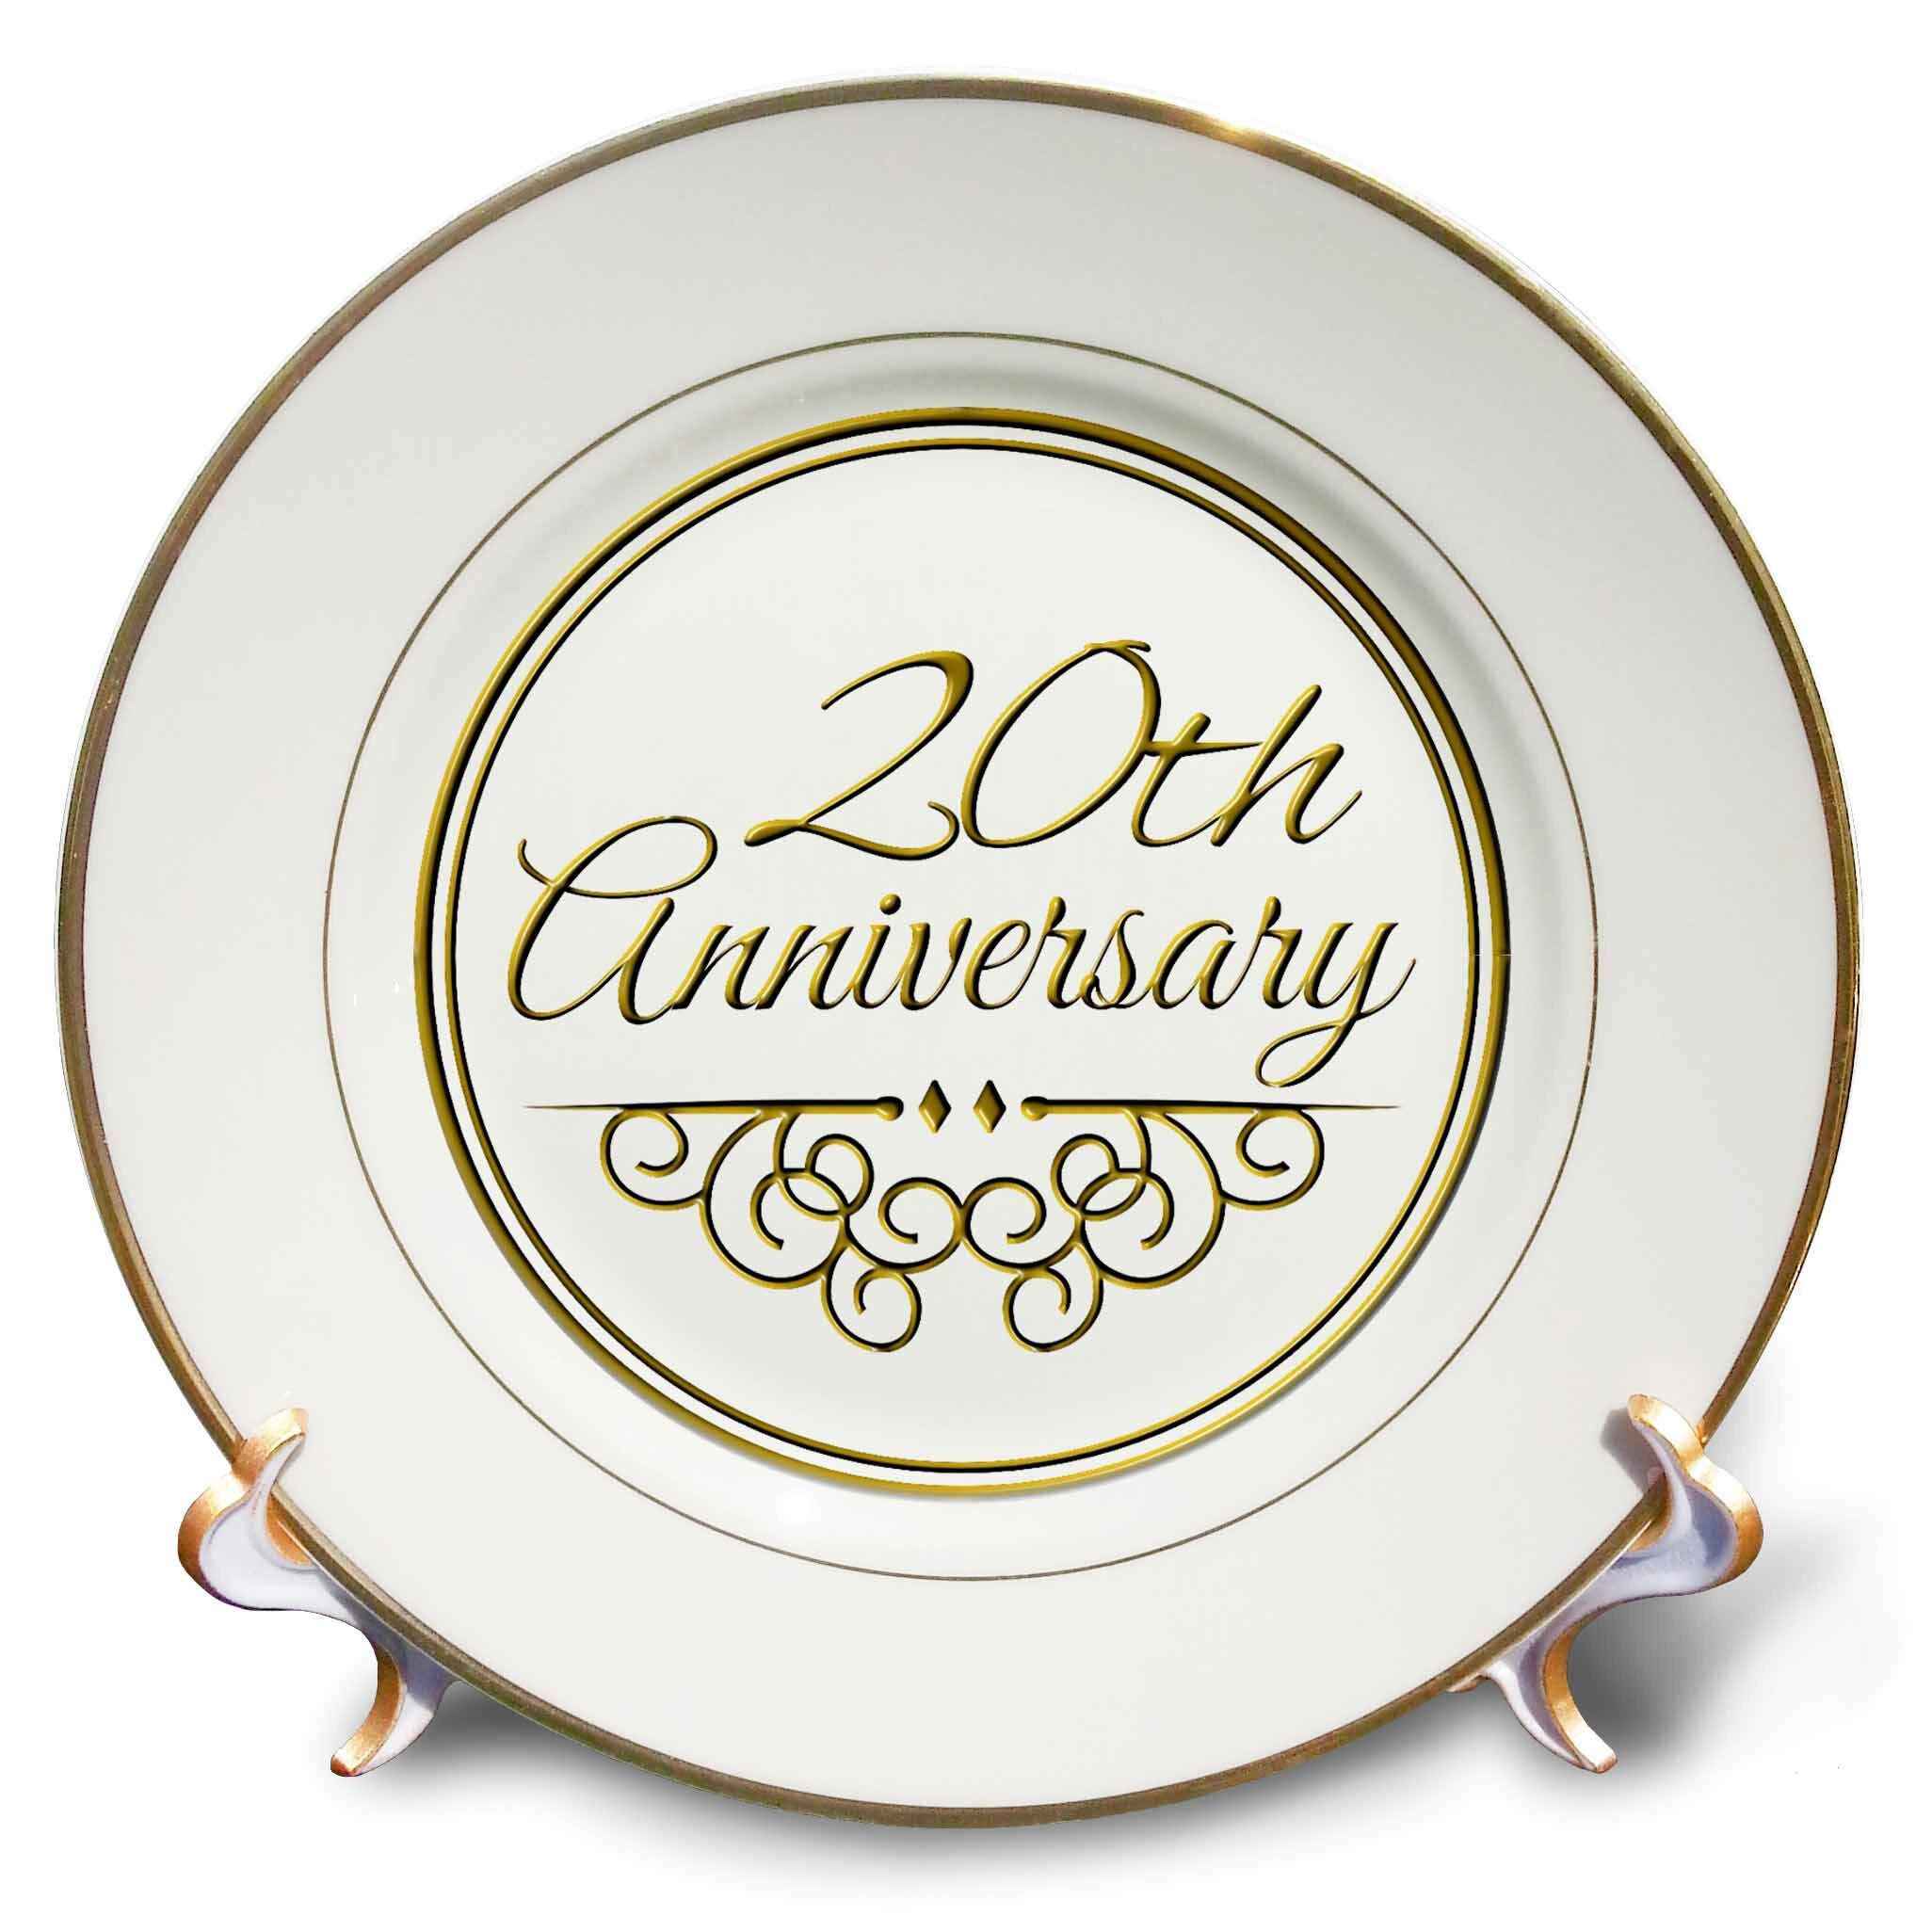 East Urban Home 20th Anniversary Gift For Celebrating Wedding Anniversaries 20 Years Married Together Porcelain Decorative Plate Wayfair